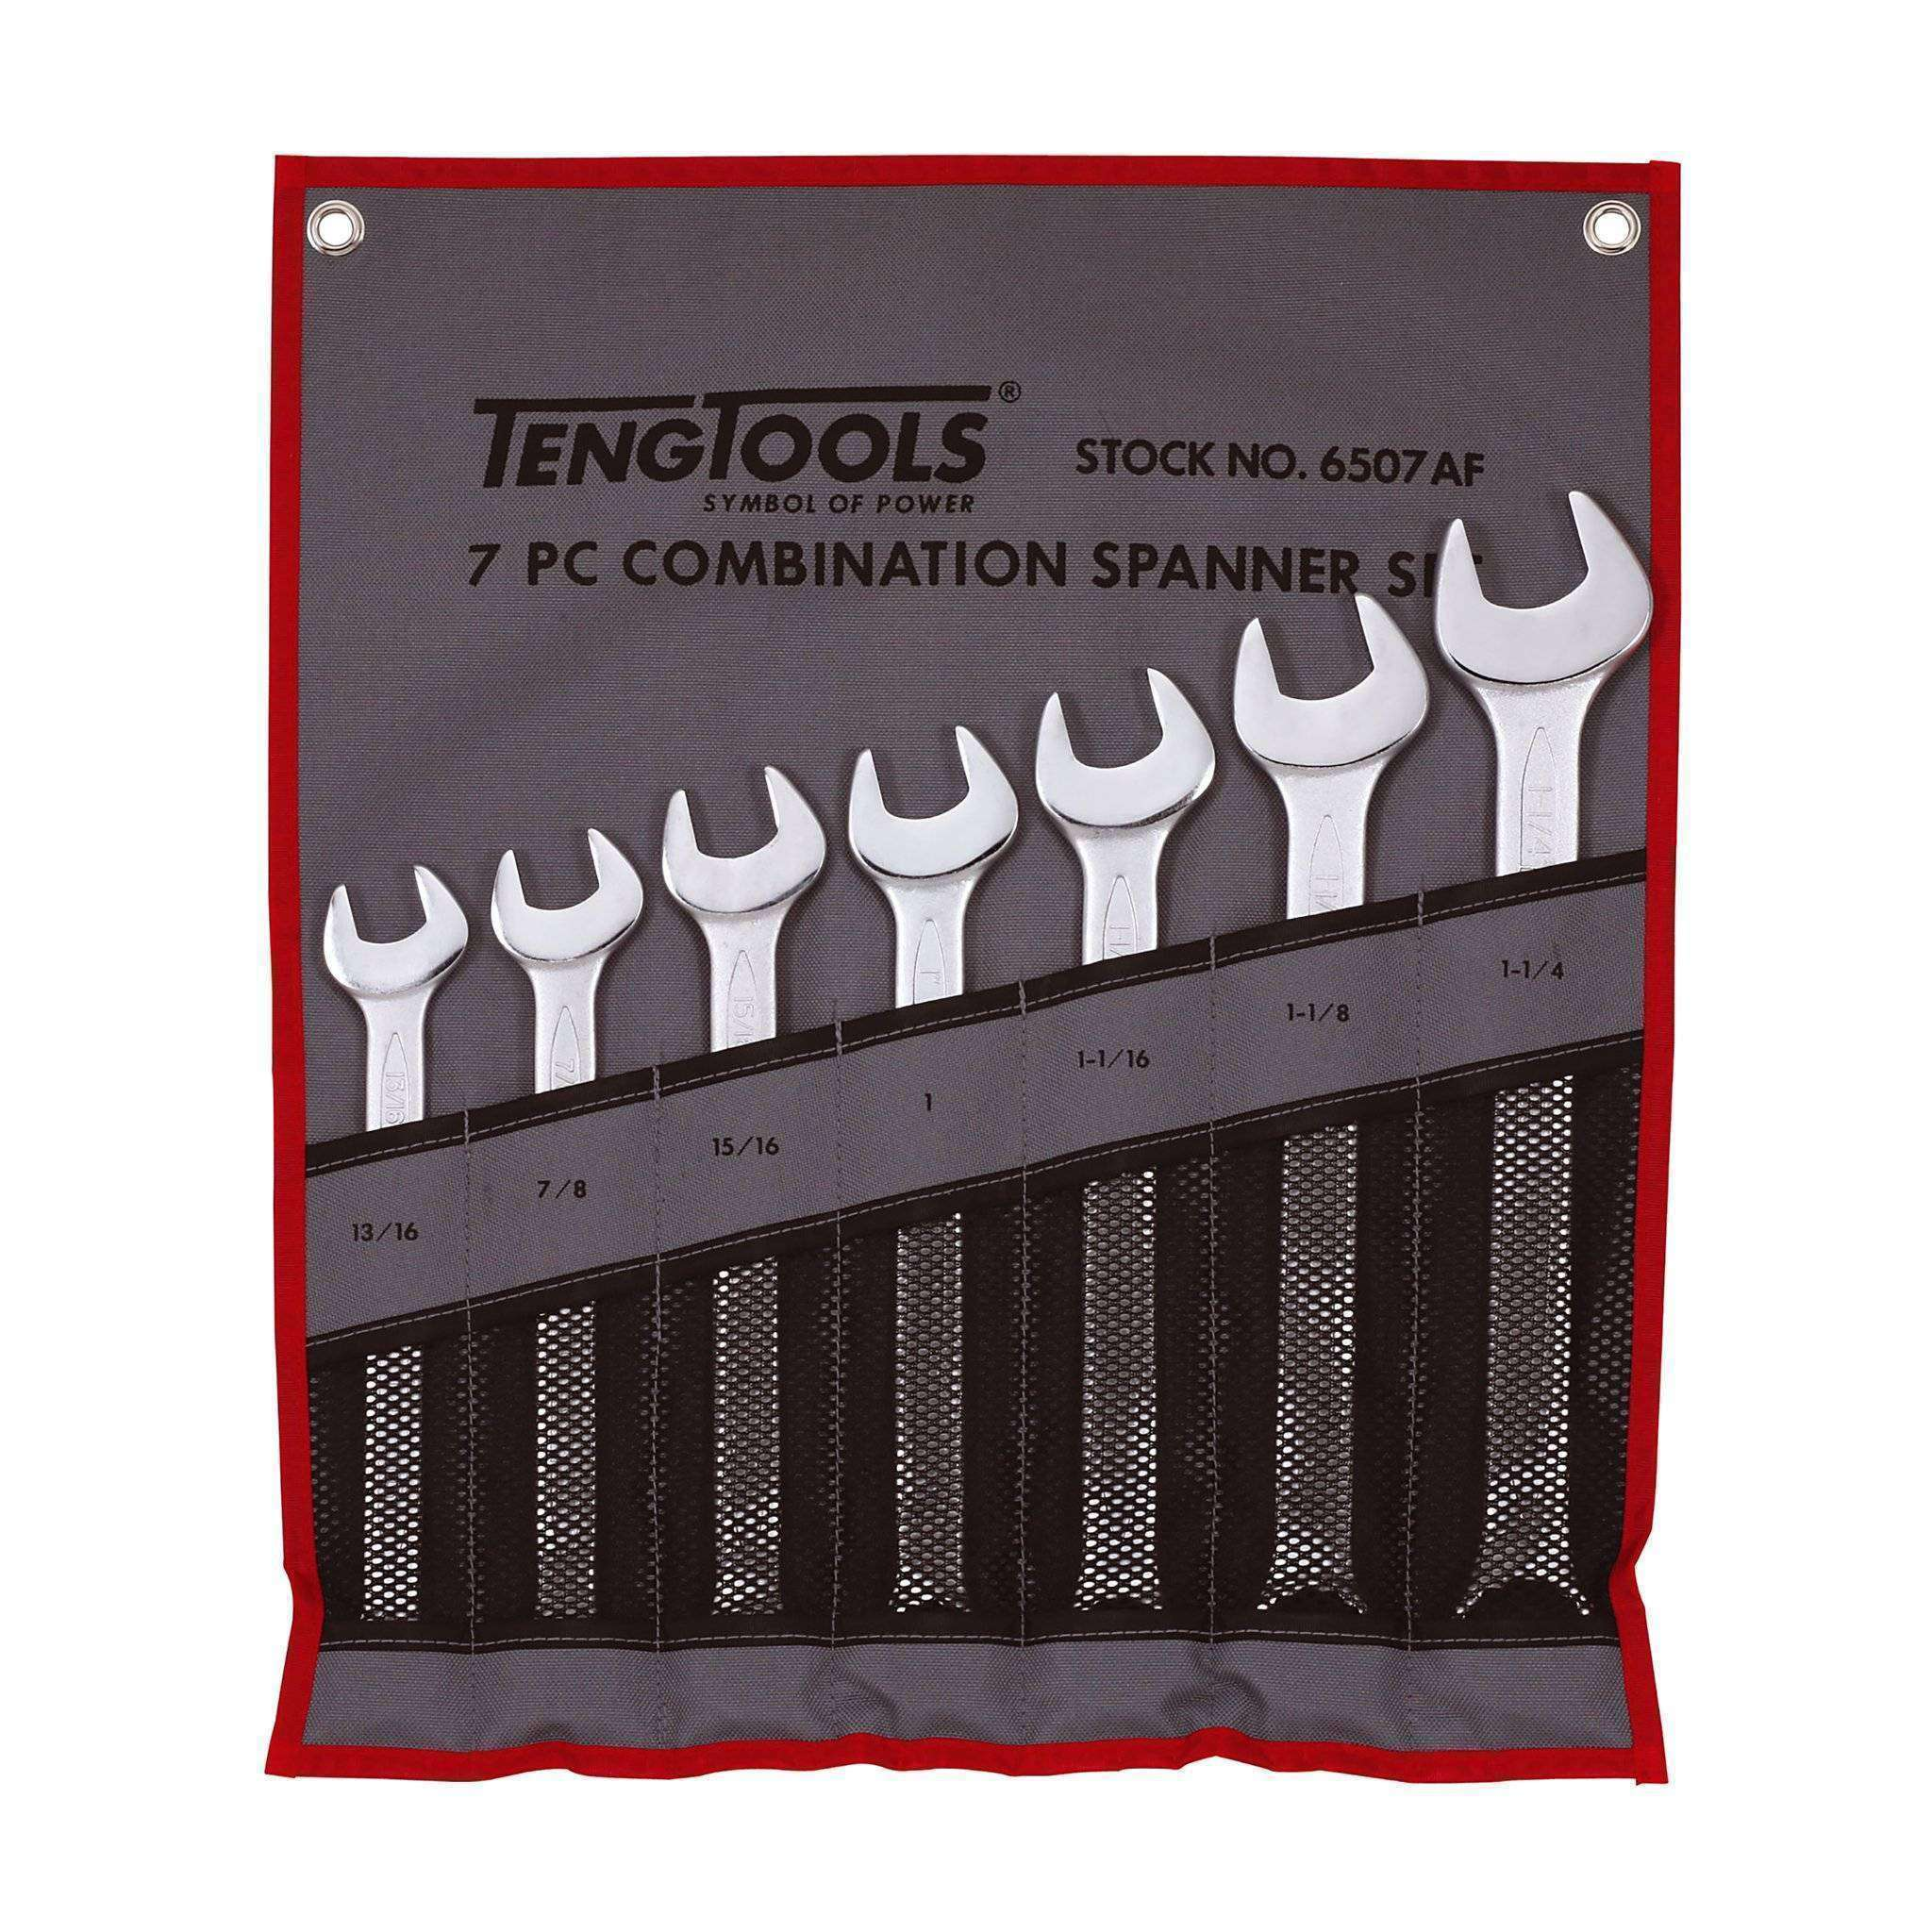 Teng Tools 6507AF - 7 Piece SAE Combination Spanner Set 13/16 to 1-1/4 Inch - Teng Tools USA